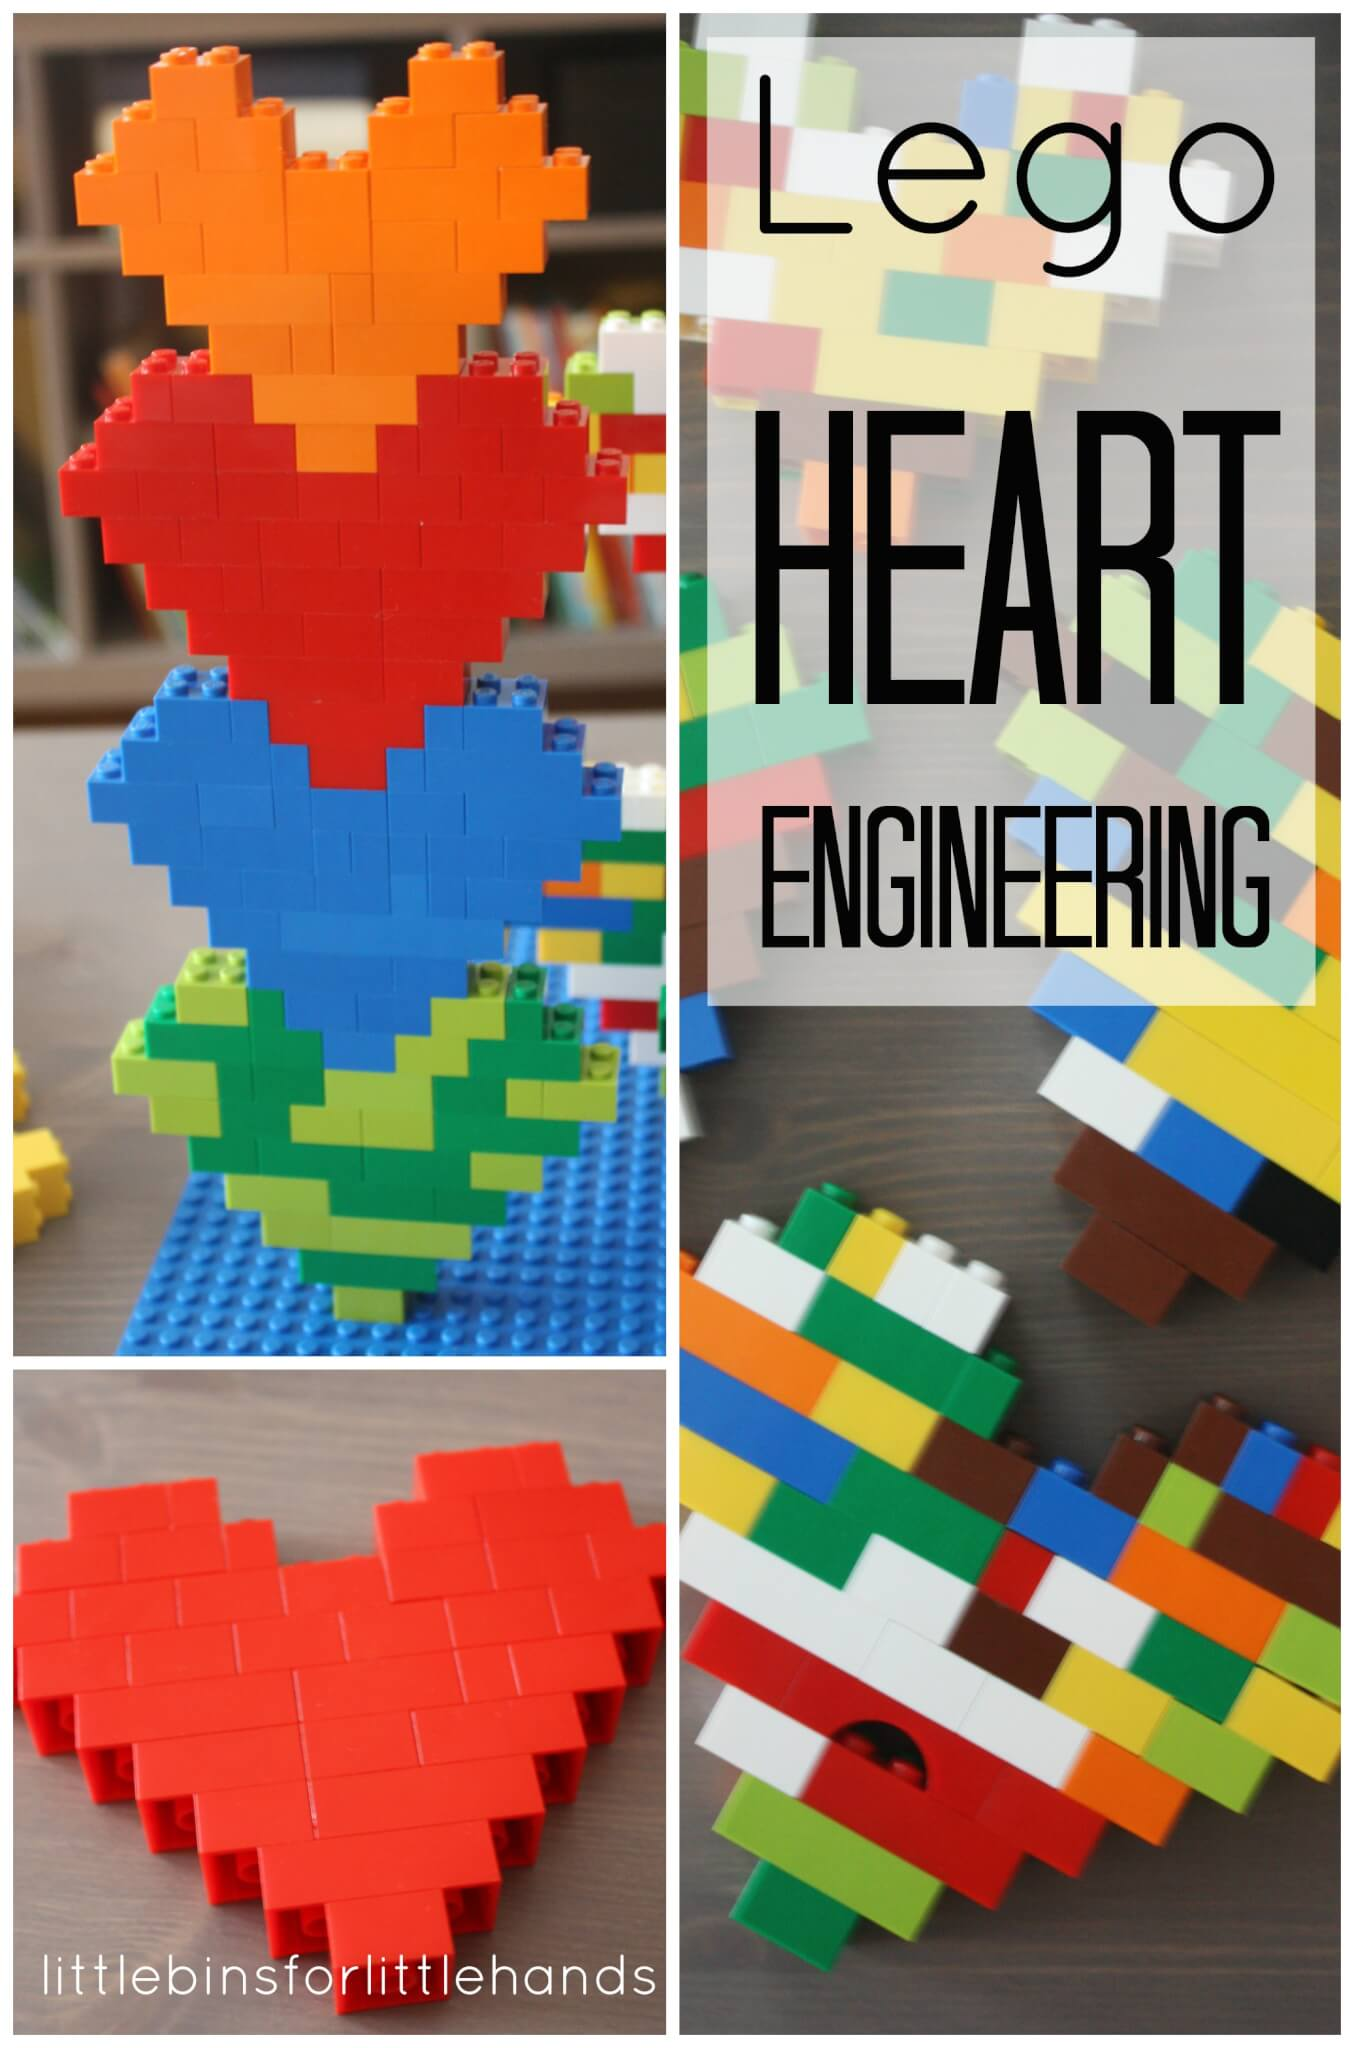 Lego hearts engineering and building project for kids for Lego crafts for kids